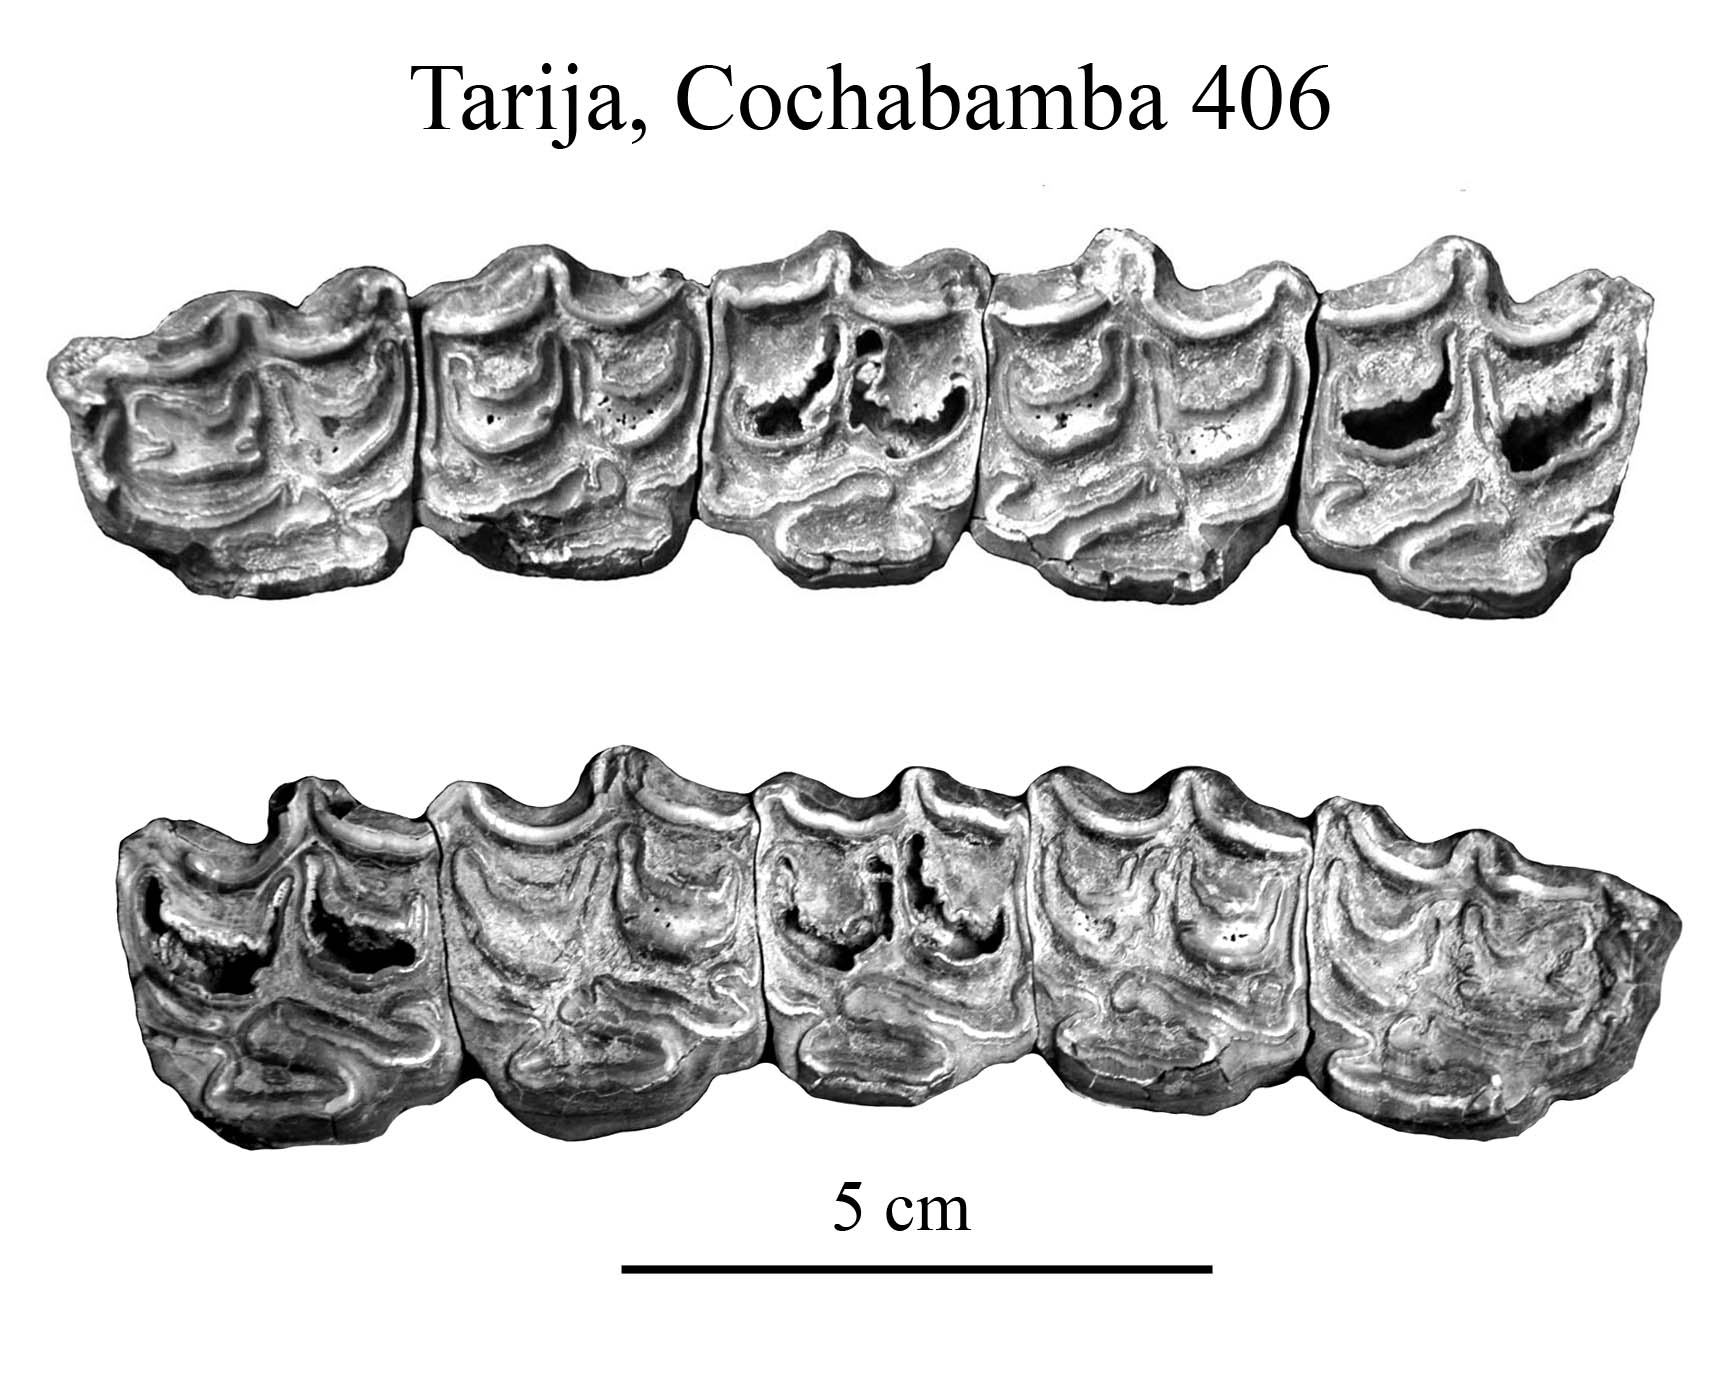 Tarija, Cochabamba 406, Upper Cheek Teeth